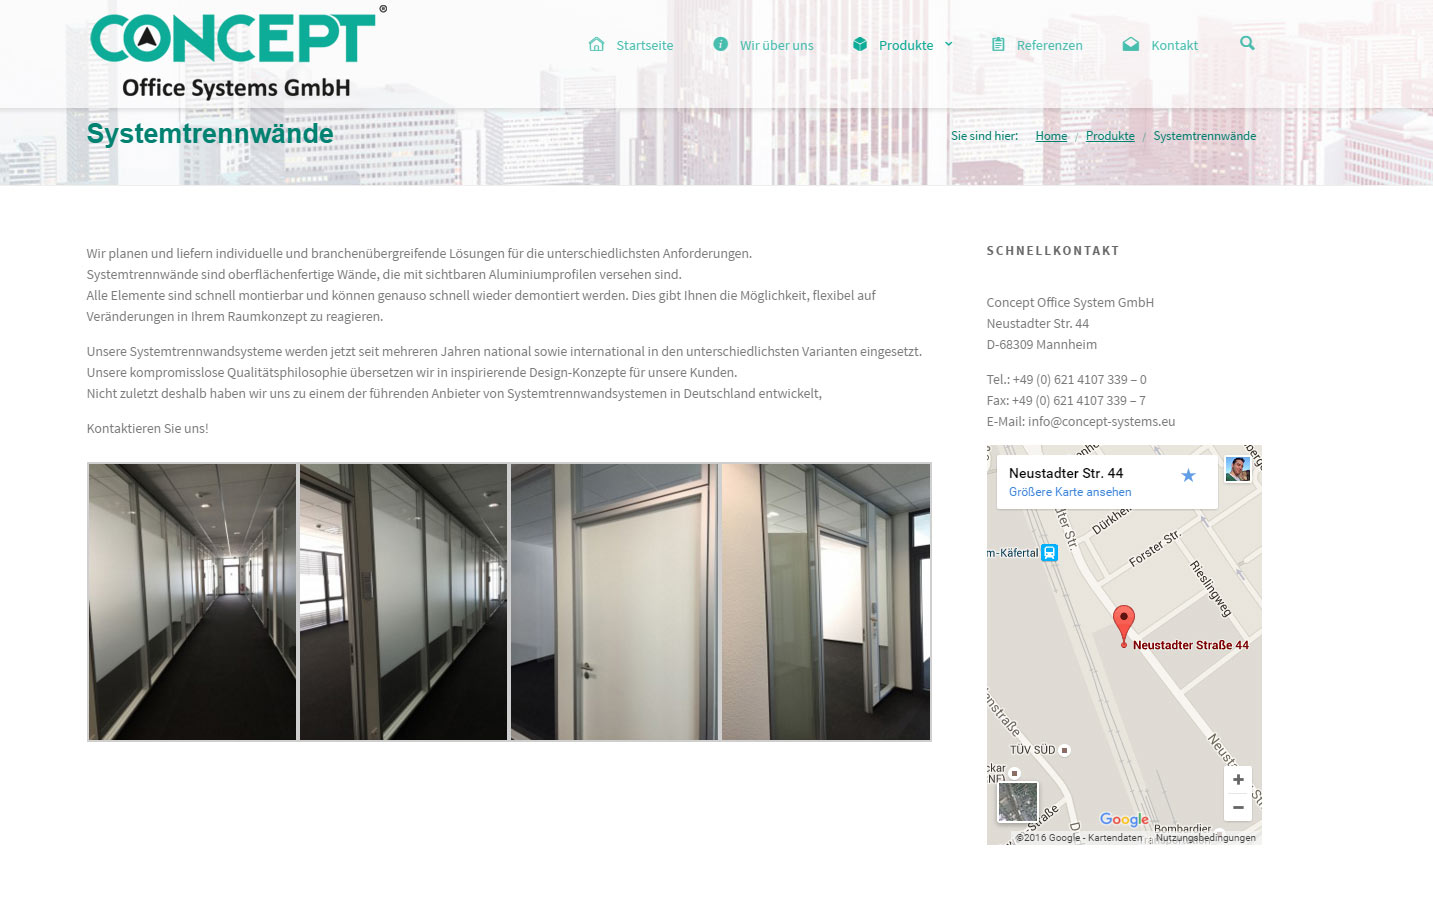 Concept Office Systems GmbH